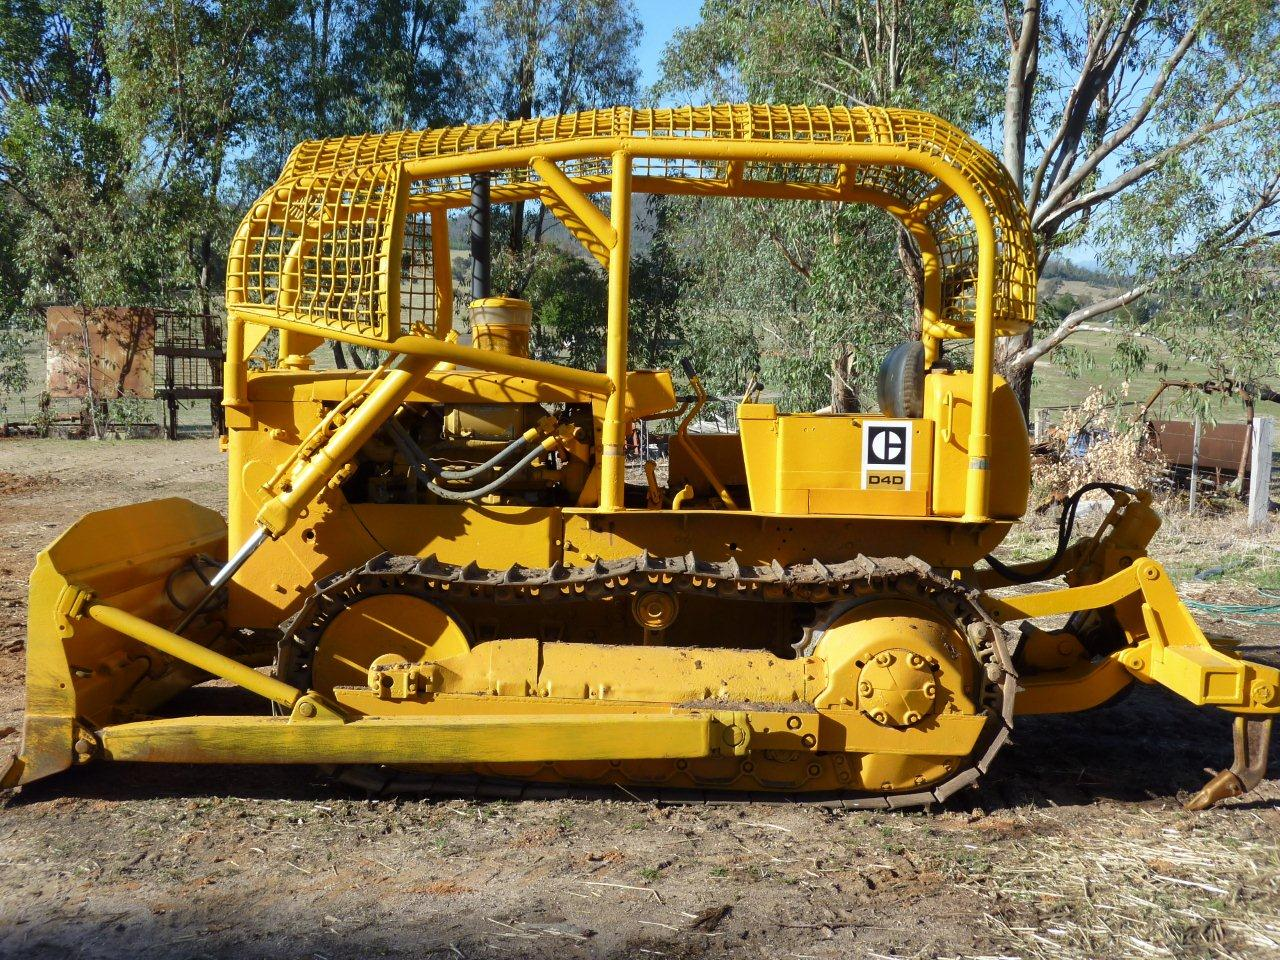 Bulldozers For Sale >> Caterpillar D4d Bulldozer